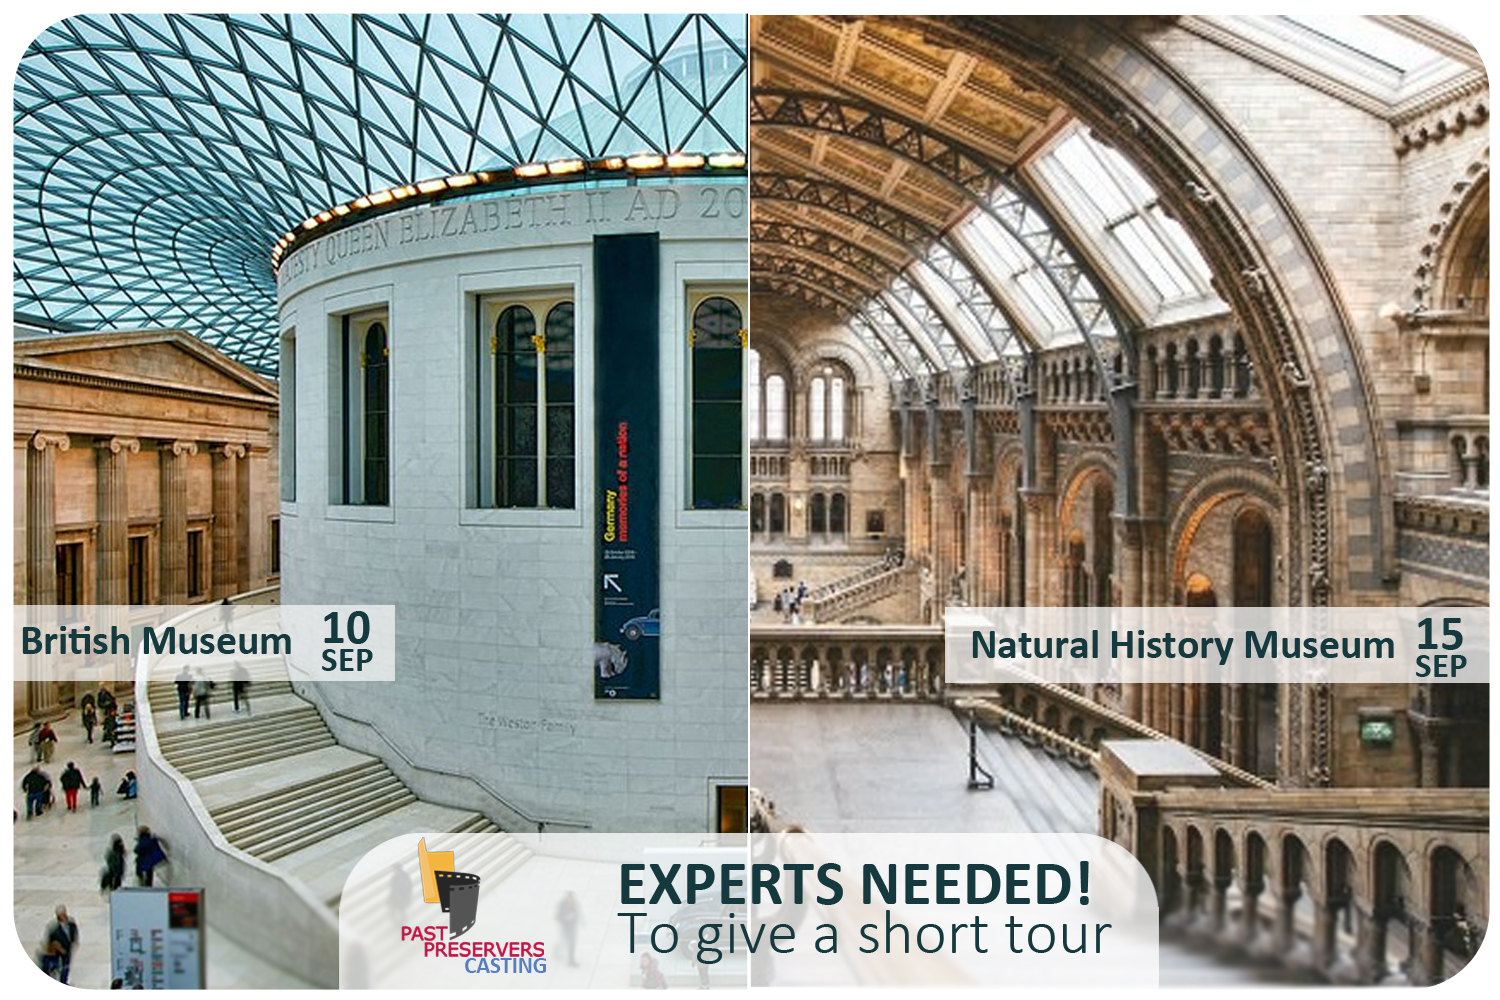 Experts needed to give a private museum tour!